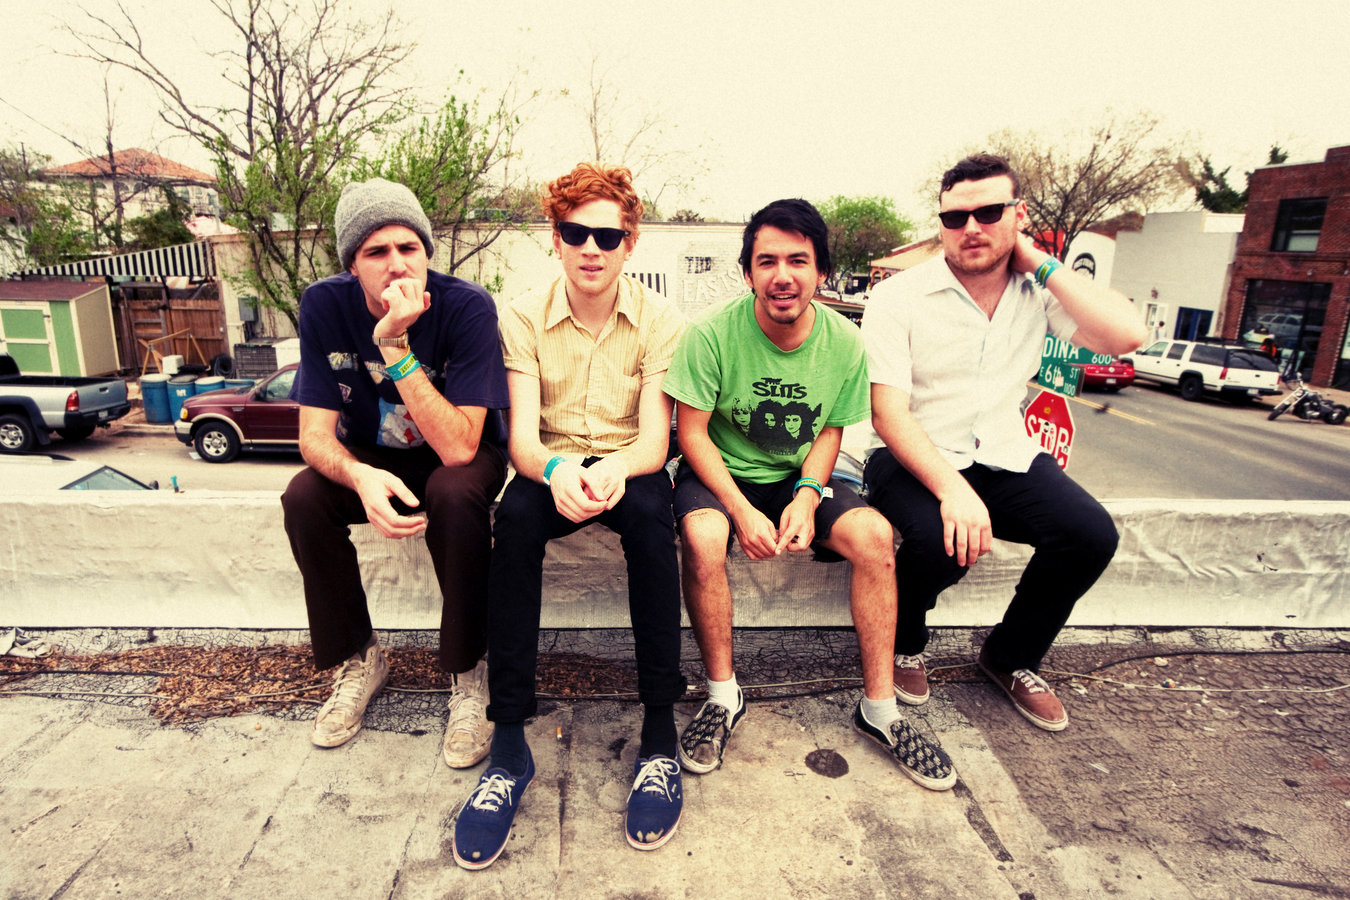 fidlar | photo cred: ringthealarm.tv